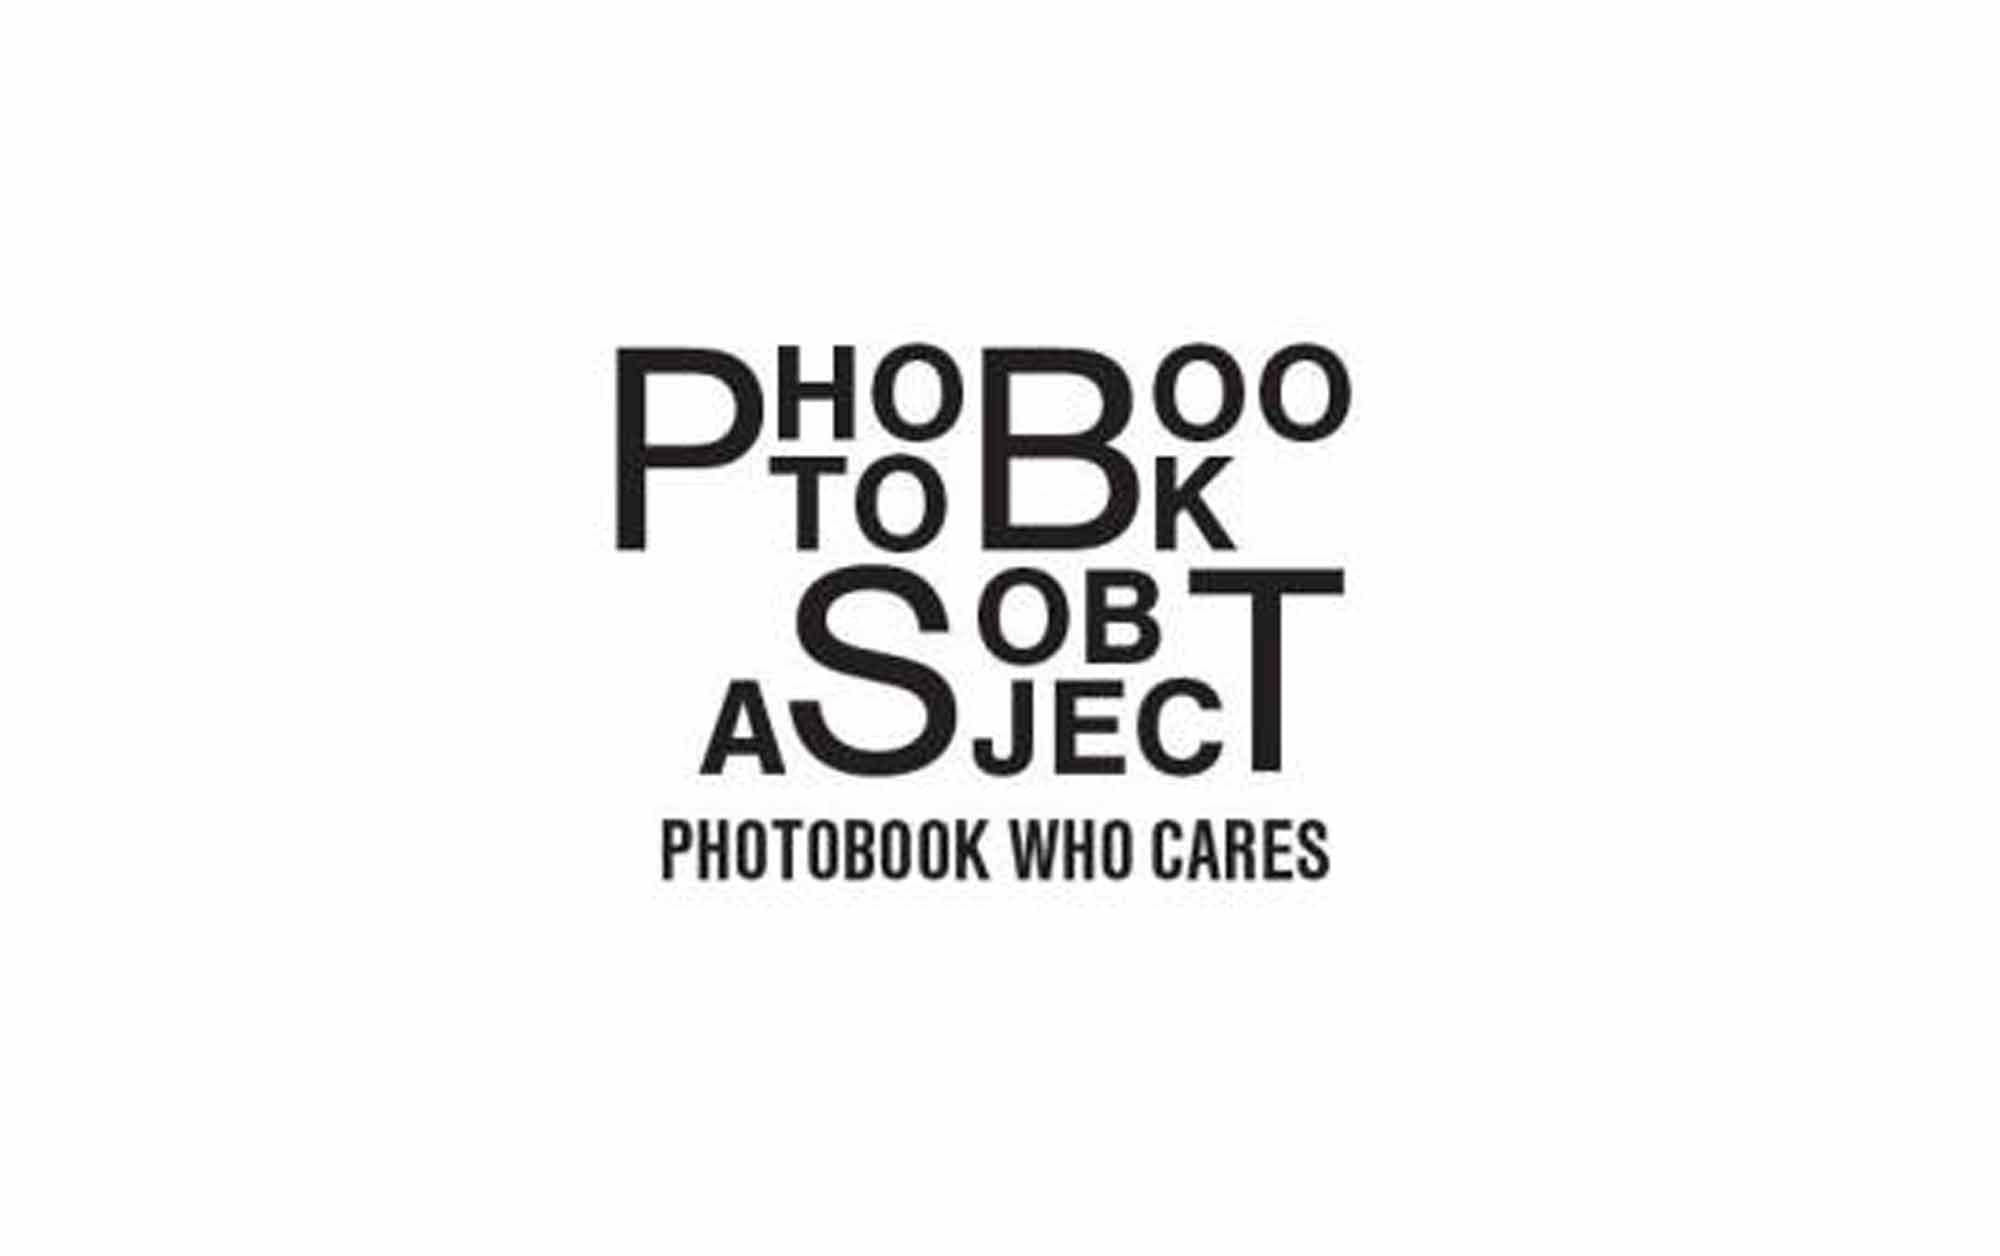 Photobook As Object / Photobook Who Cares meeting